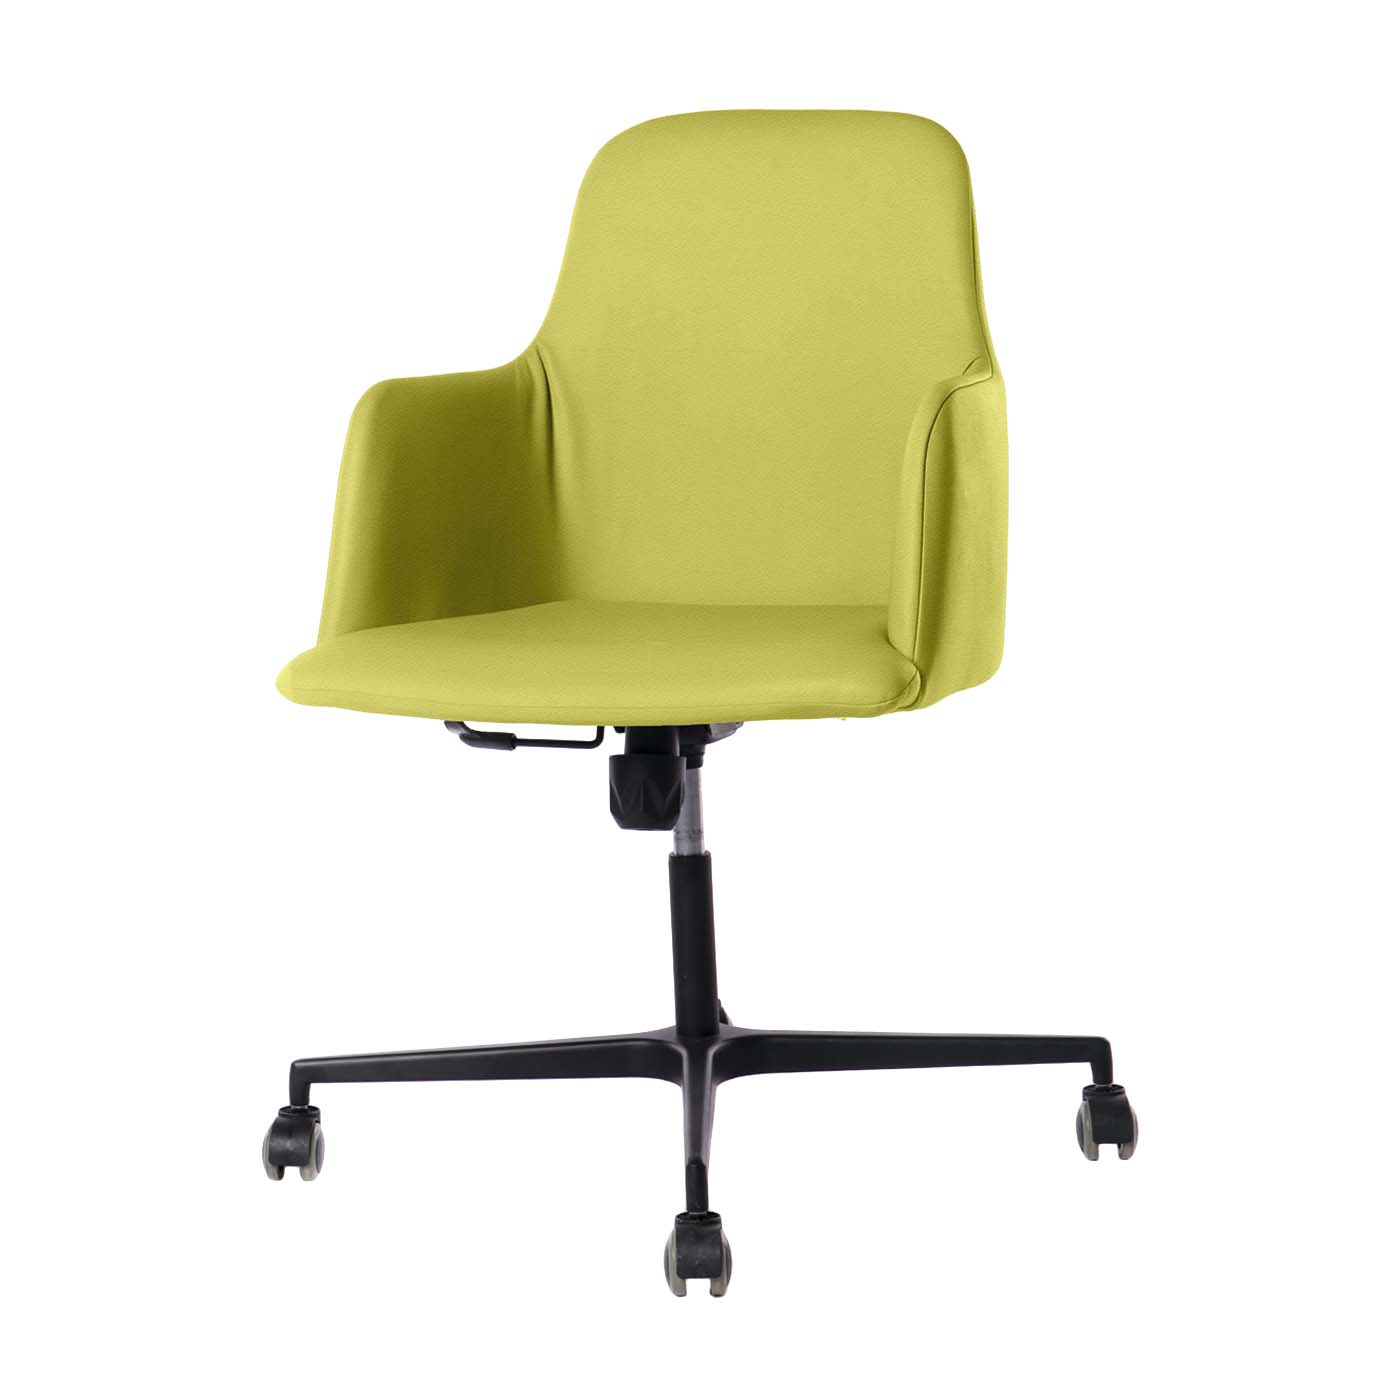 St. Pauli Lime Work Chair